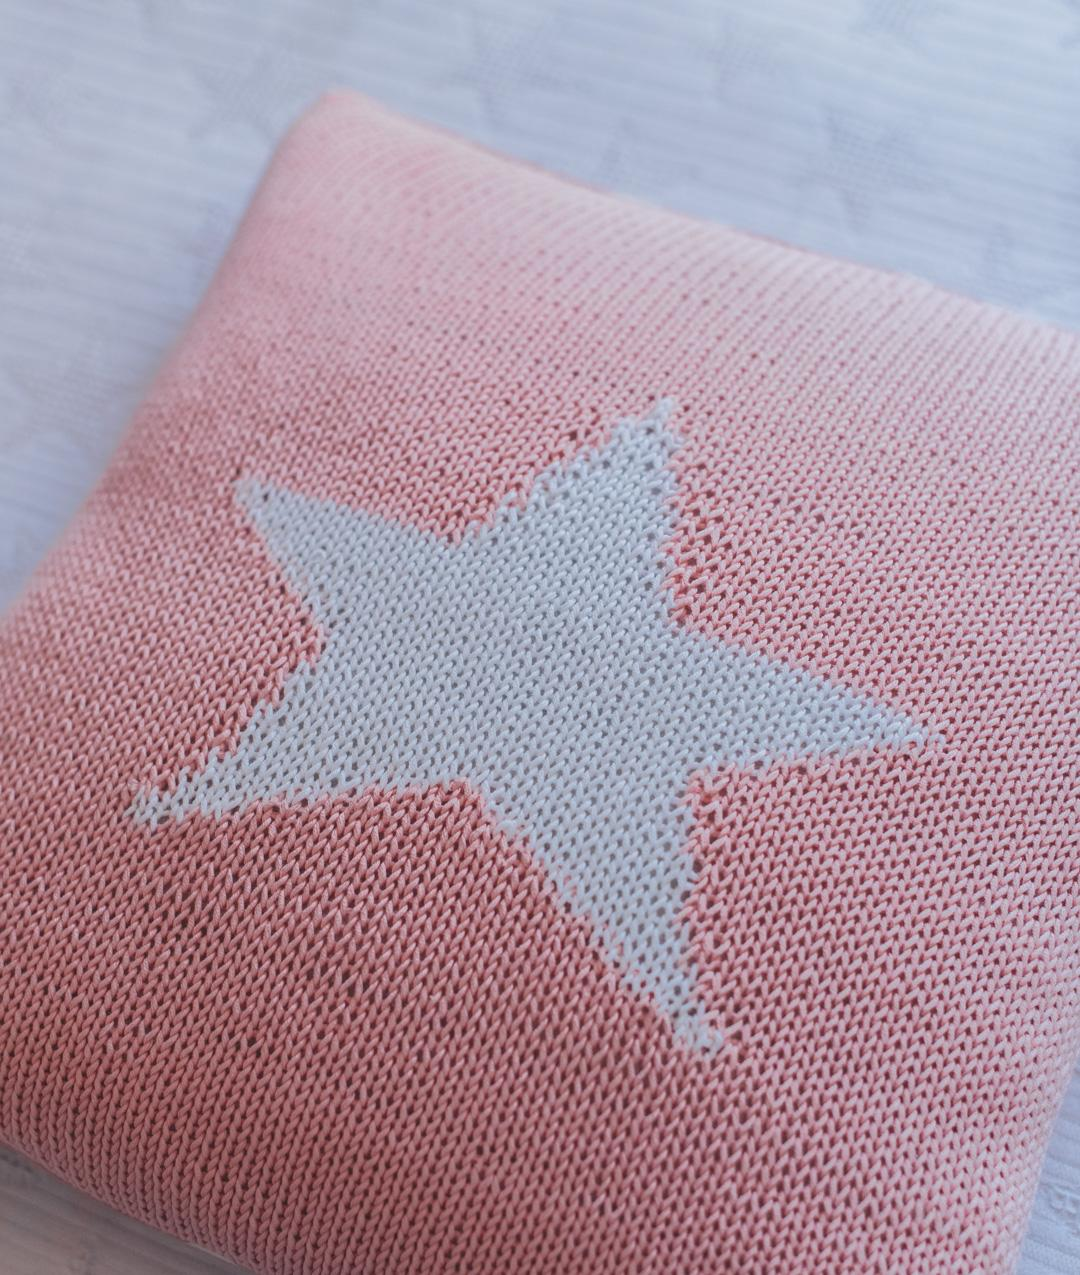 Kids Home Decor Collection - HomewareKids Home Decor Collection - Homeware - MY LITTLE STAR CUSHION - 1